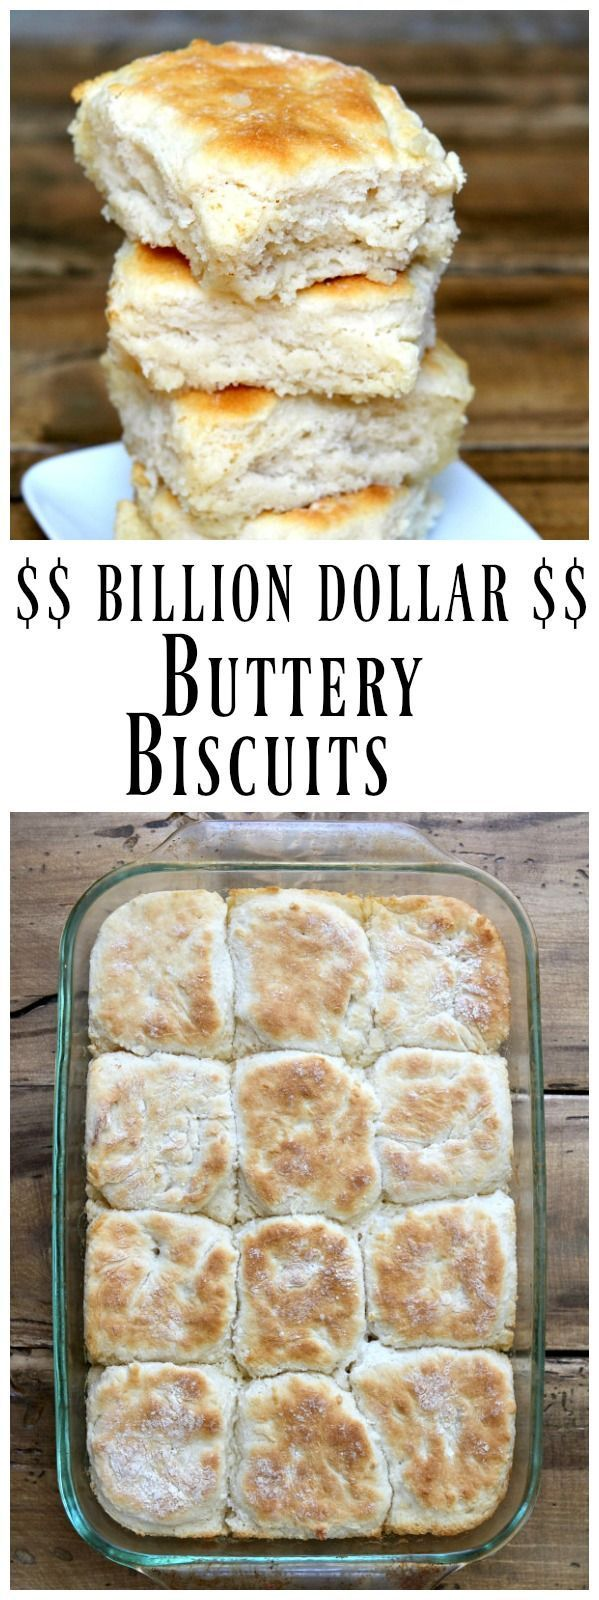 These Billion Dollar Buttery Biscuits are super easy to make, and they're the best buttery biscuits ever. They're also known at 7Up Biscuits, but Buttery Biscuits is a better description. Recipe from http://RecipeBoy.com